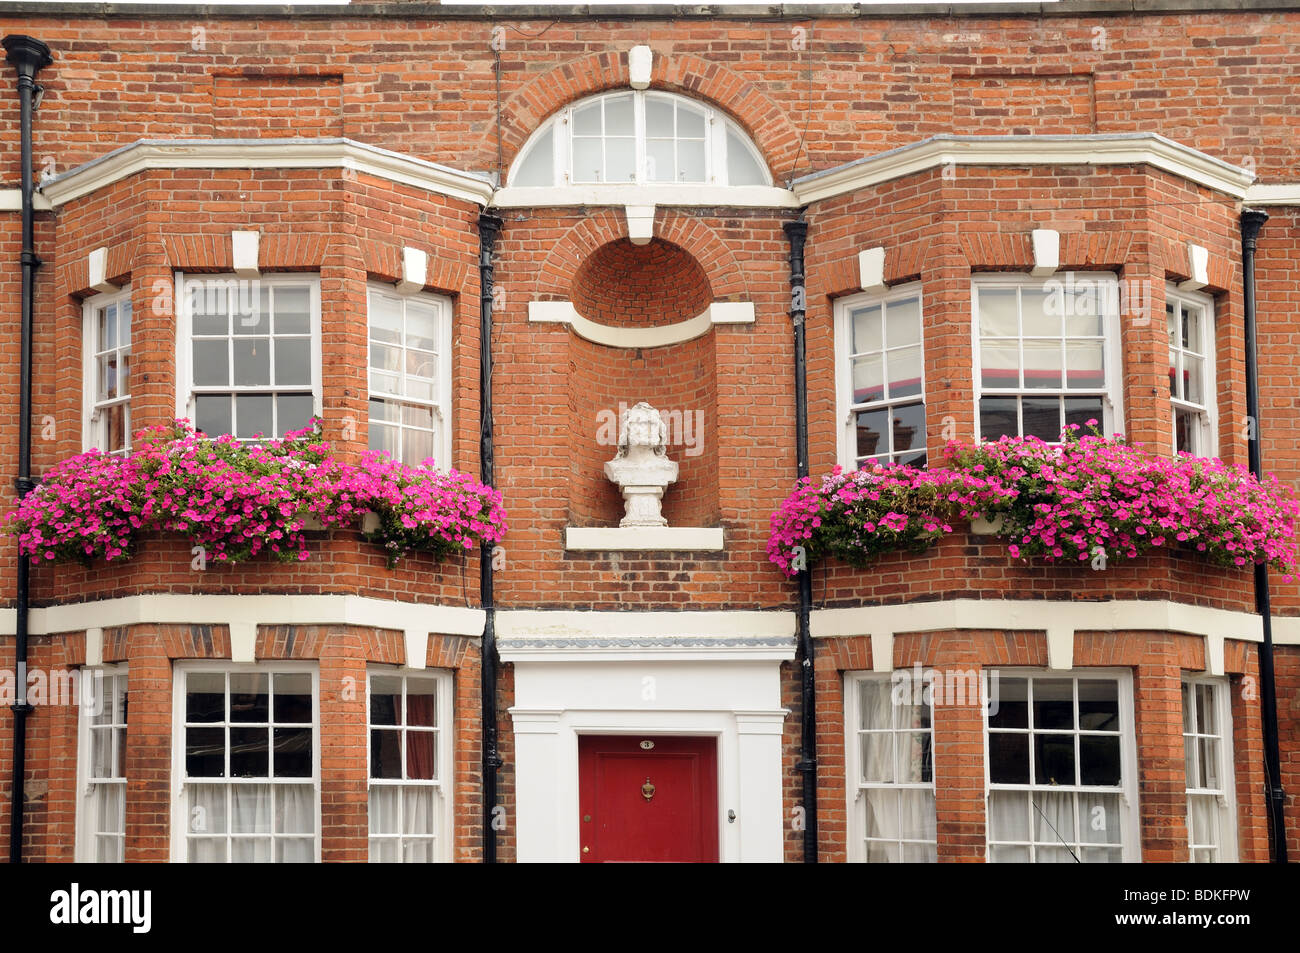 Fine Old Red Brick Built House With Bay Windows And Window Boxes Of